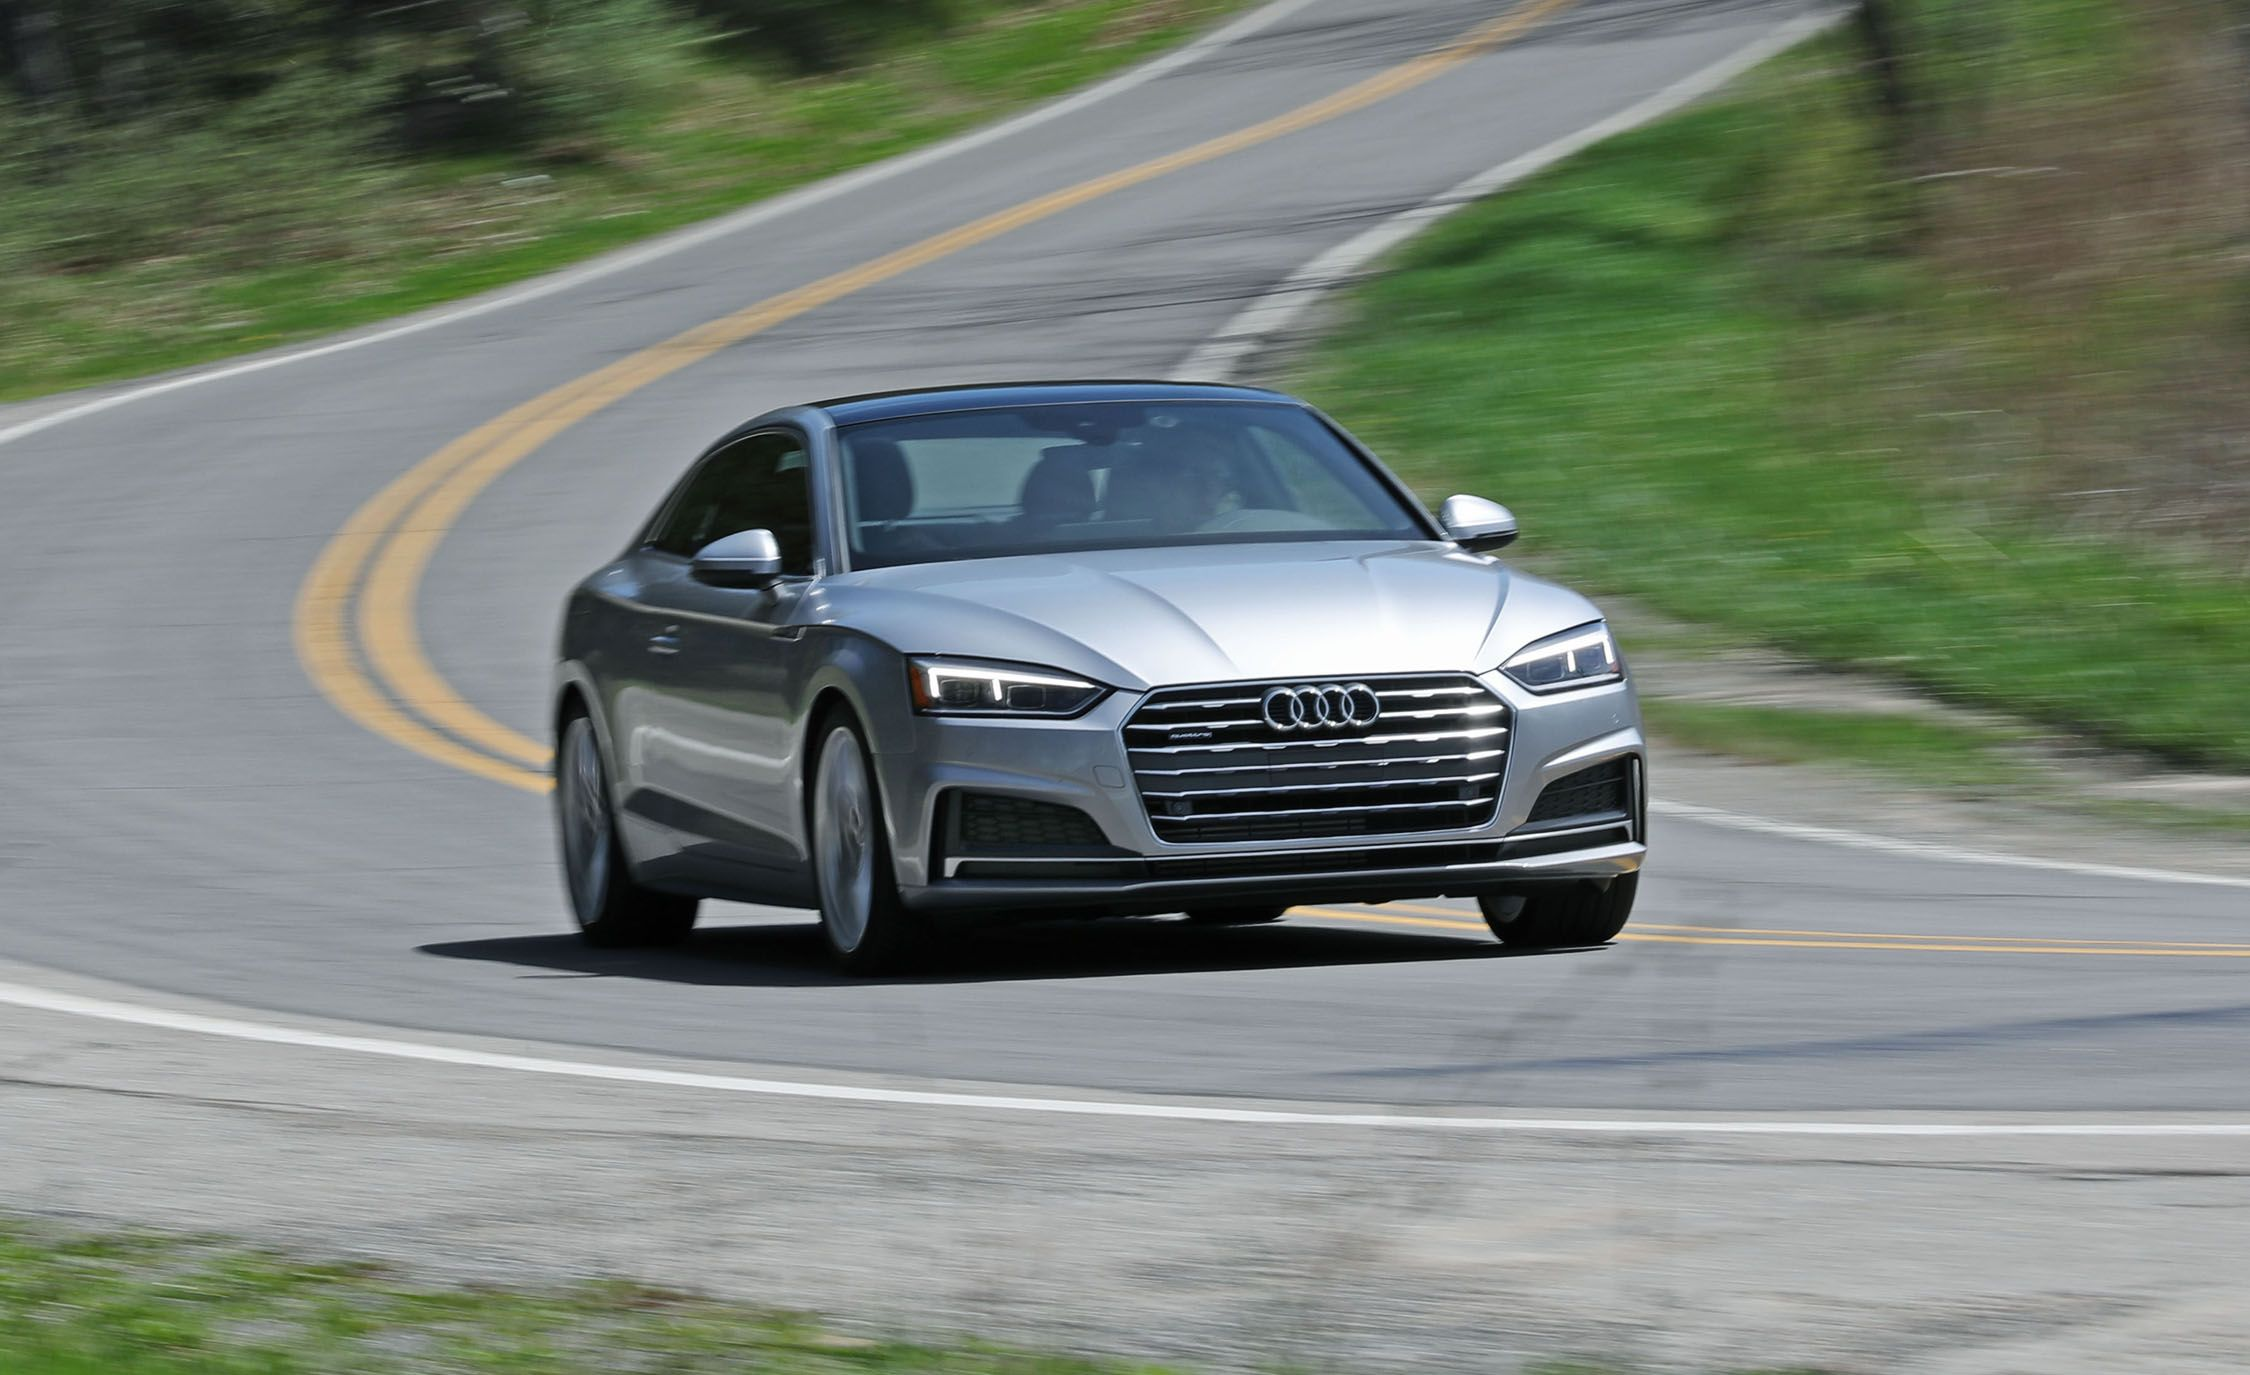 2018 Audi A5 Coupe and Cabriolet